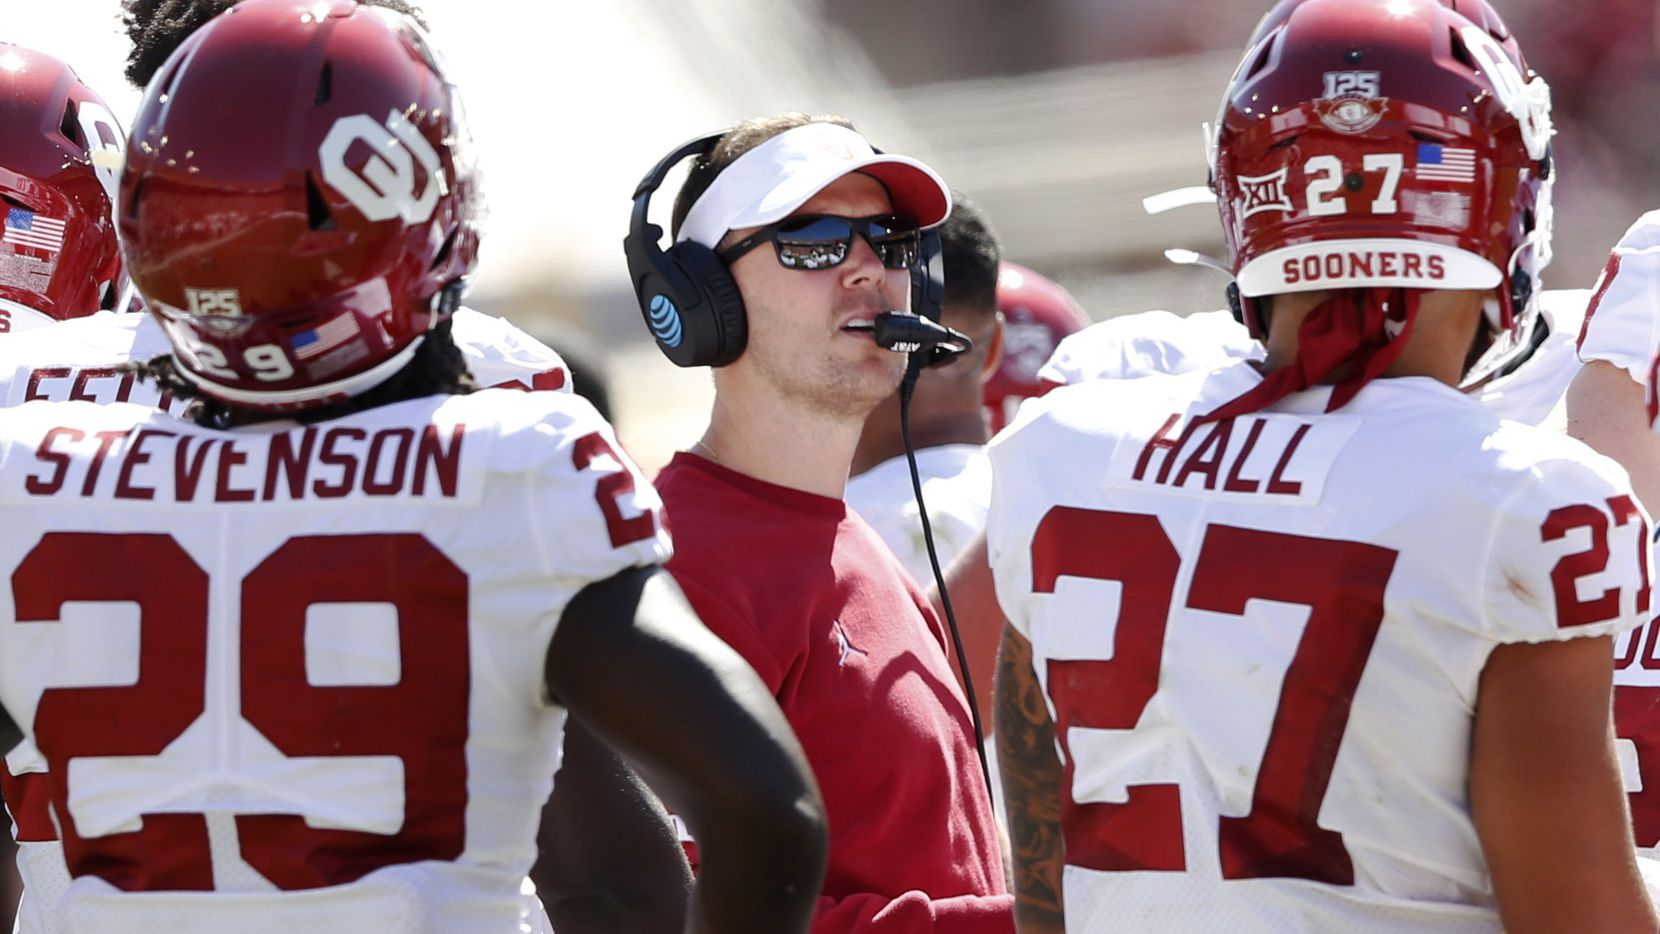 Oklahoma Sooners head coach Lincoln Riley looks at the replay in a game against Texas Longhorns during the first half of play in the Red River Showdown at the Cotton Bowl in Dallas on Saturday, October 12, 2019. (Vernon Bryant/The Dallas Morning News)